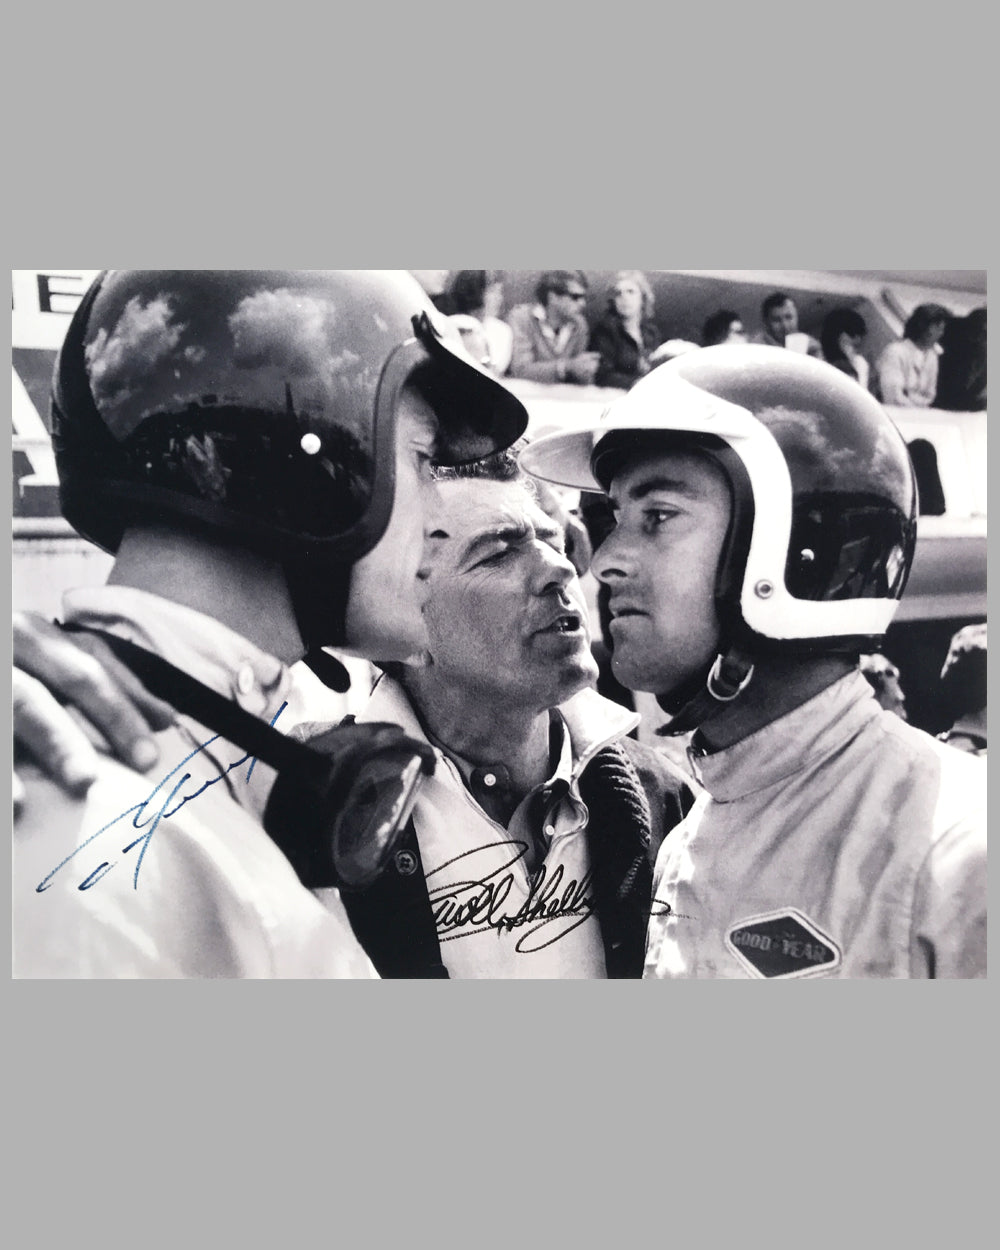 Dan Gurney, Carroll Shelby and Bob Bondurant b&w photograph on rag paper